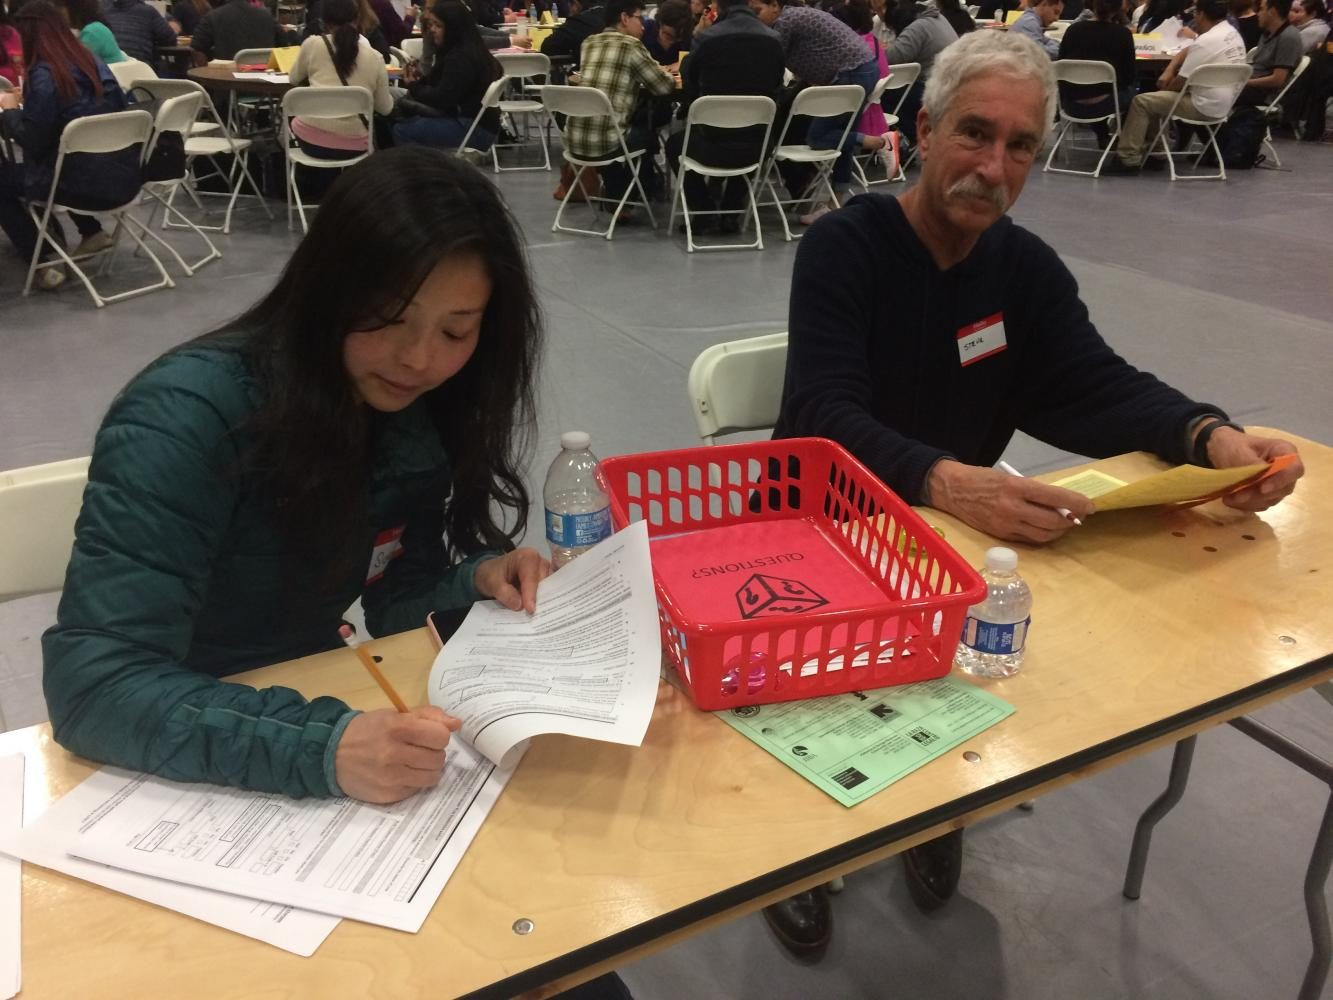 Immigration+Workshop+volunteers+%28left%29+Susan+Jang+and+Steve+Ravel+help+attendees+fill+out+citizenship+applications+in+the+SJCC+gym%2C+Saturday+April+22.%0A